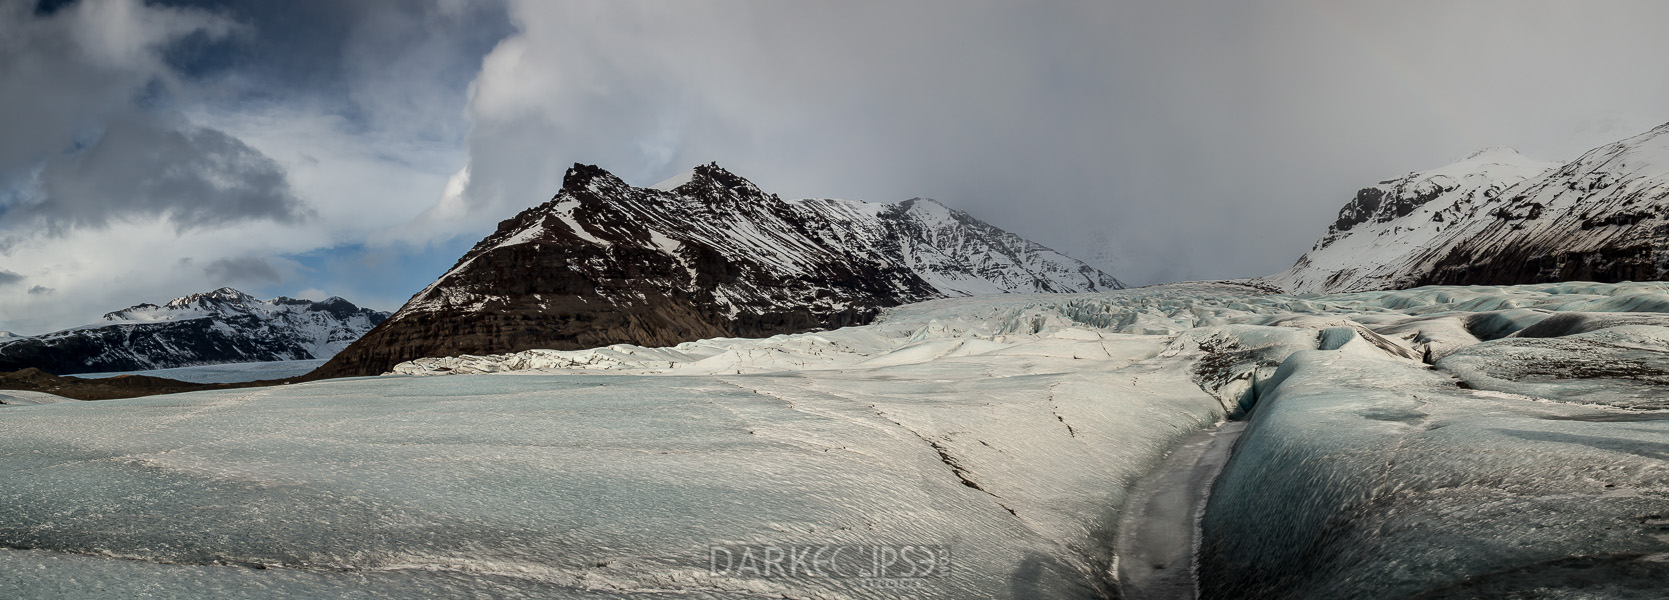 Svinaefellsjokull_Glacie_Walk Panorama 03022014  part 2-2